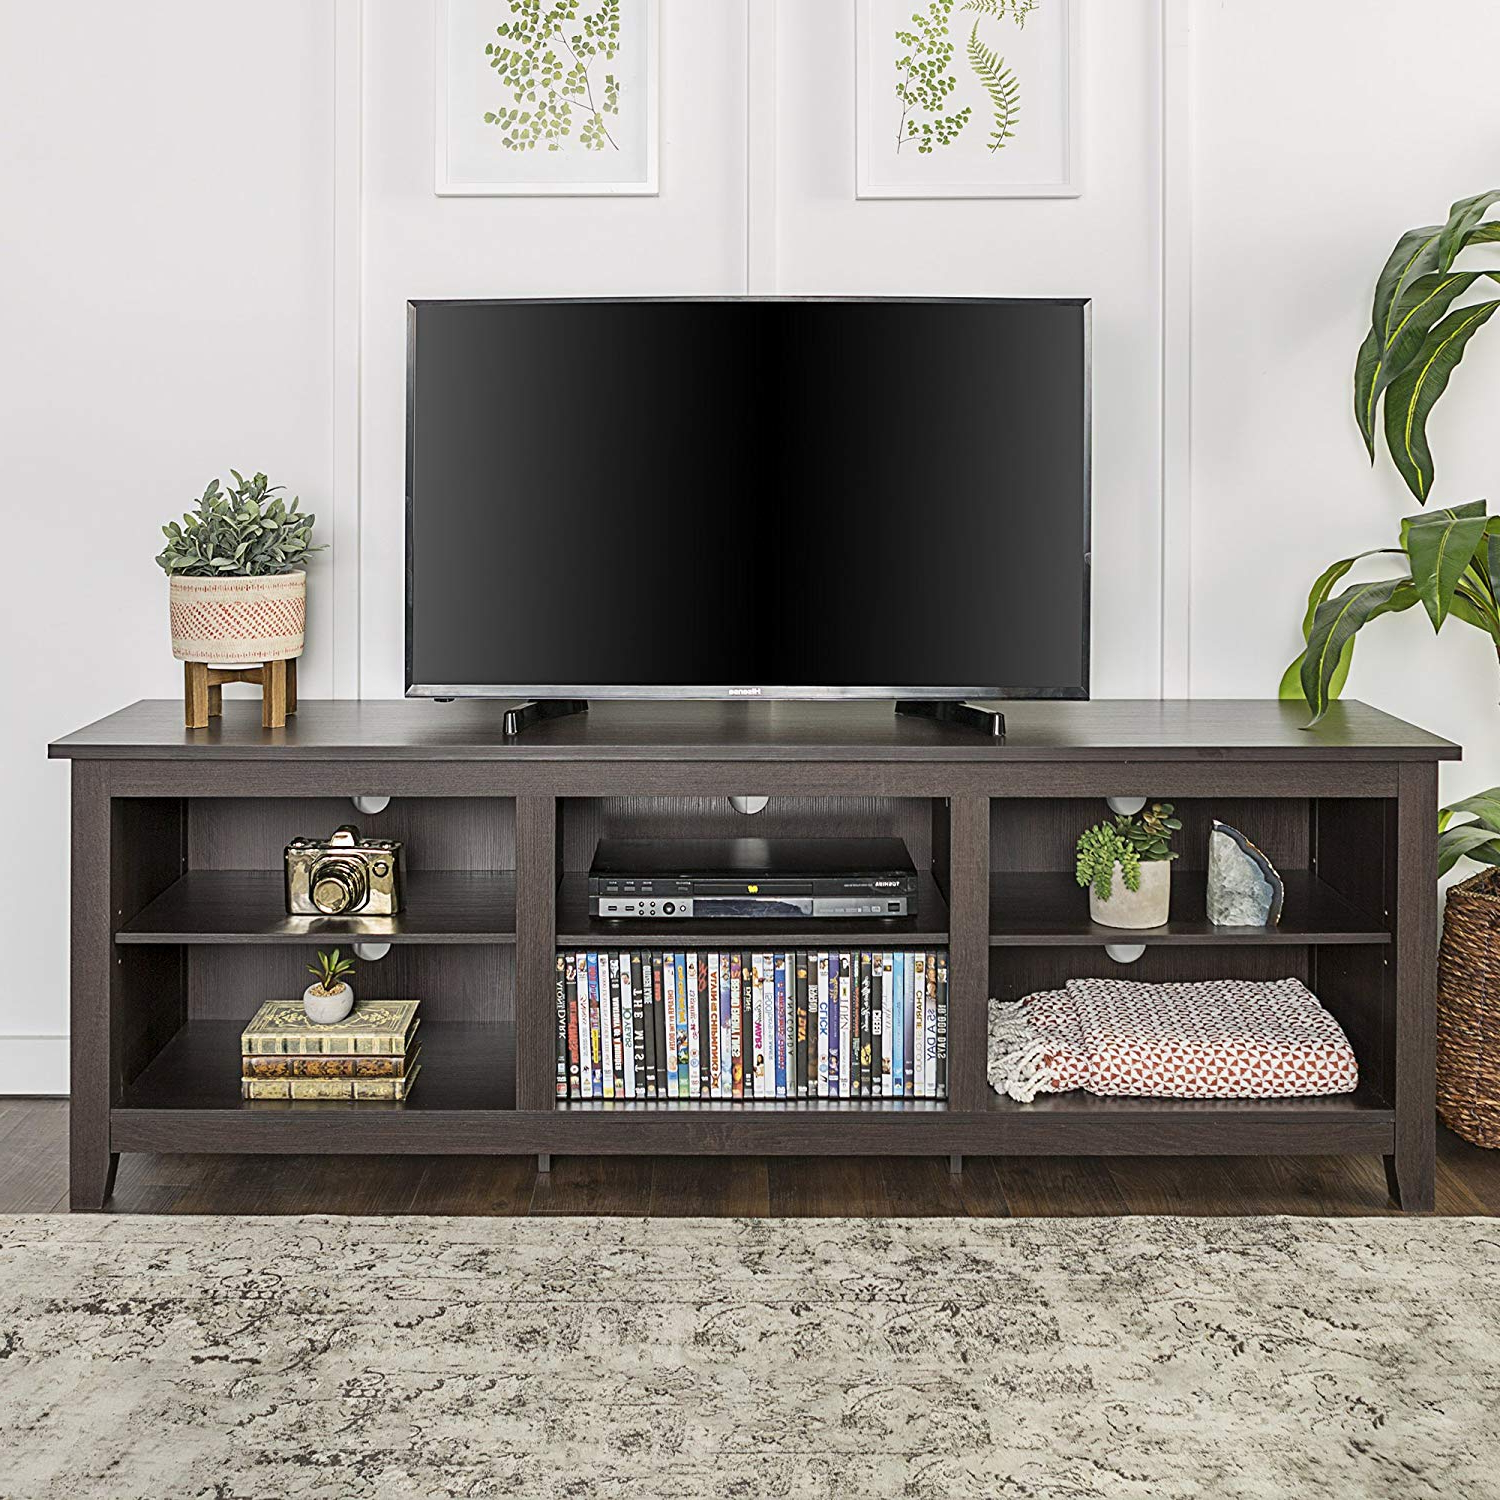 """Amazon: We Furniture 70"""" Espresso Wood Tv Stand Console: Kitchen Regarding Newest Maddy 70 Inch Tv Stands (View 7 of 20)"""